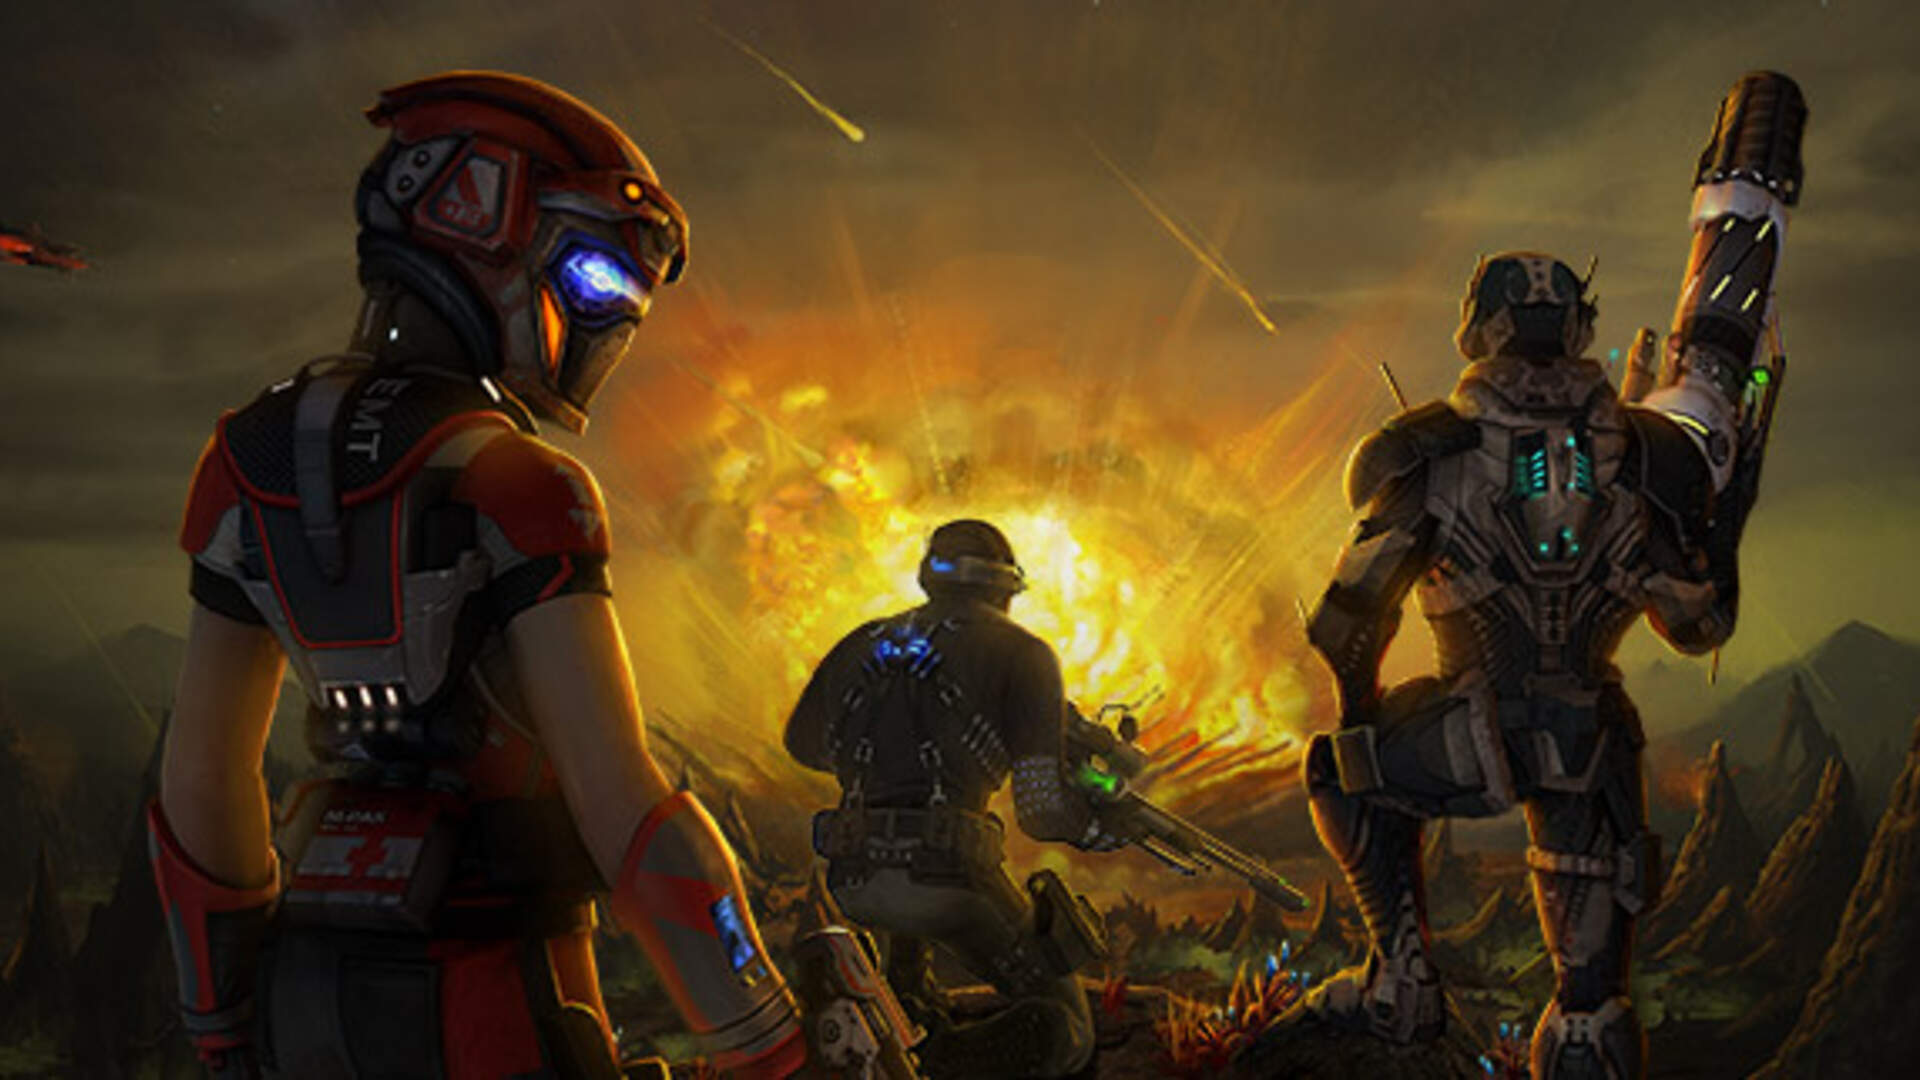 Defiance 2050: Rebooted Open-World F2P Sci-Fi Shooter is Now Available on PC, PS4 and Xbox One